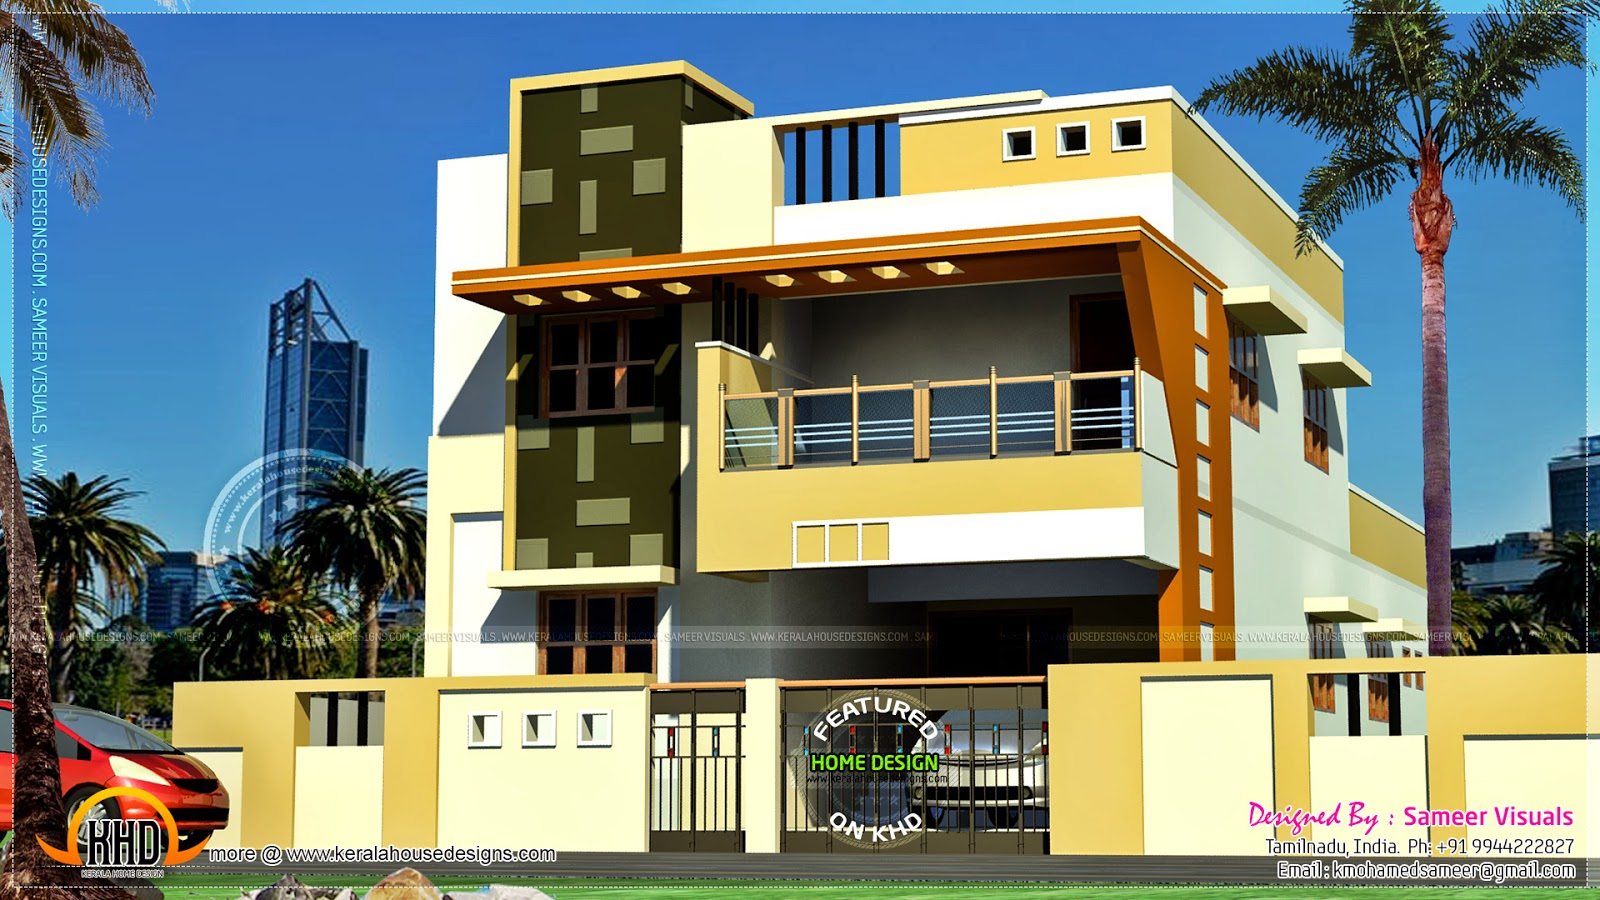 Modern south indian house design kerala home design and for Best indian home designs